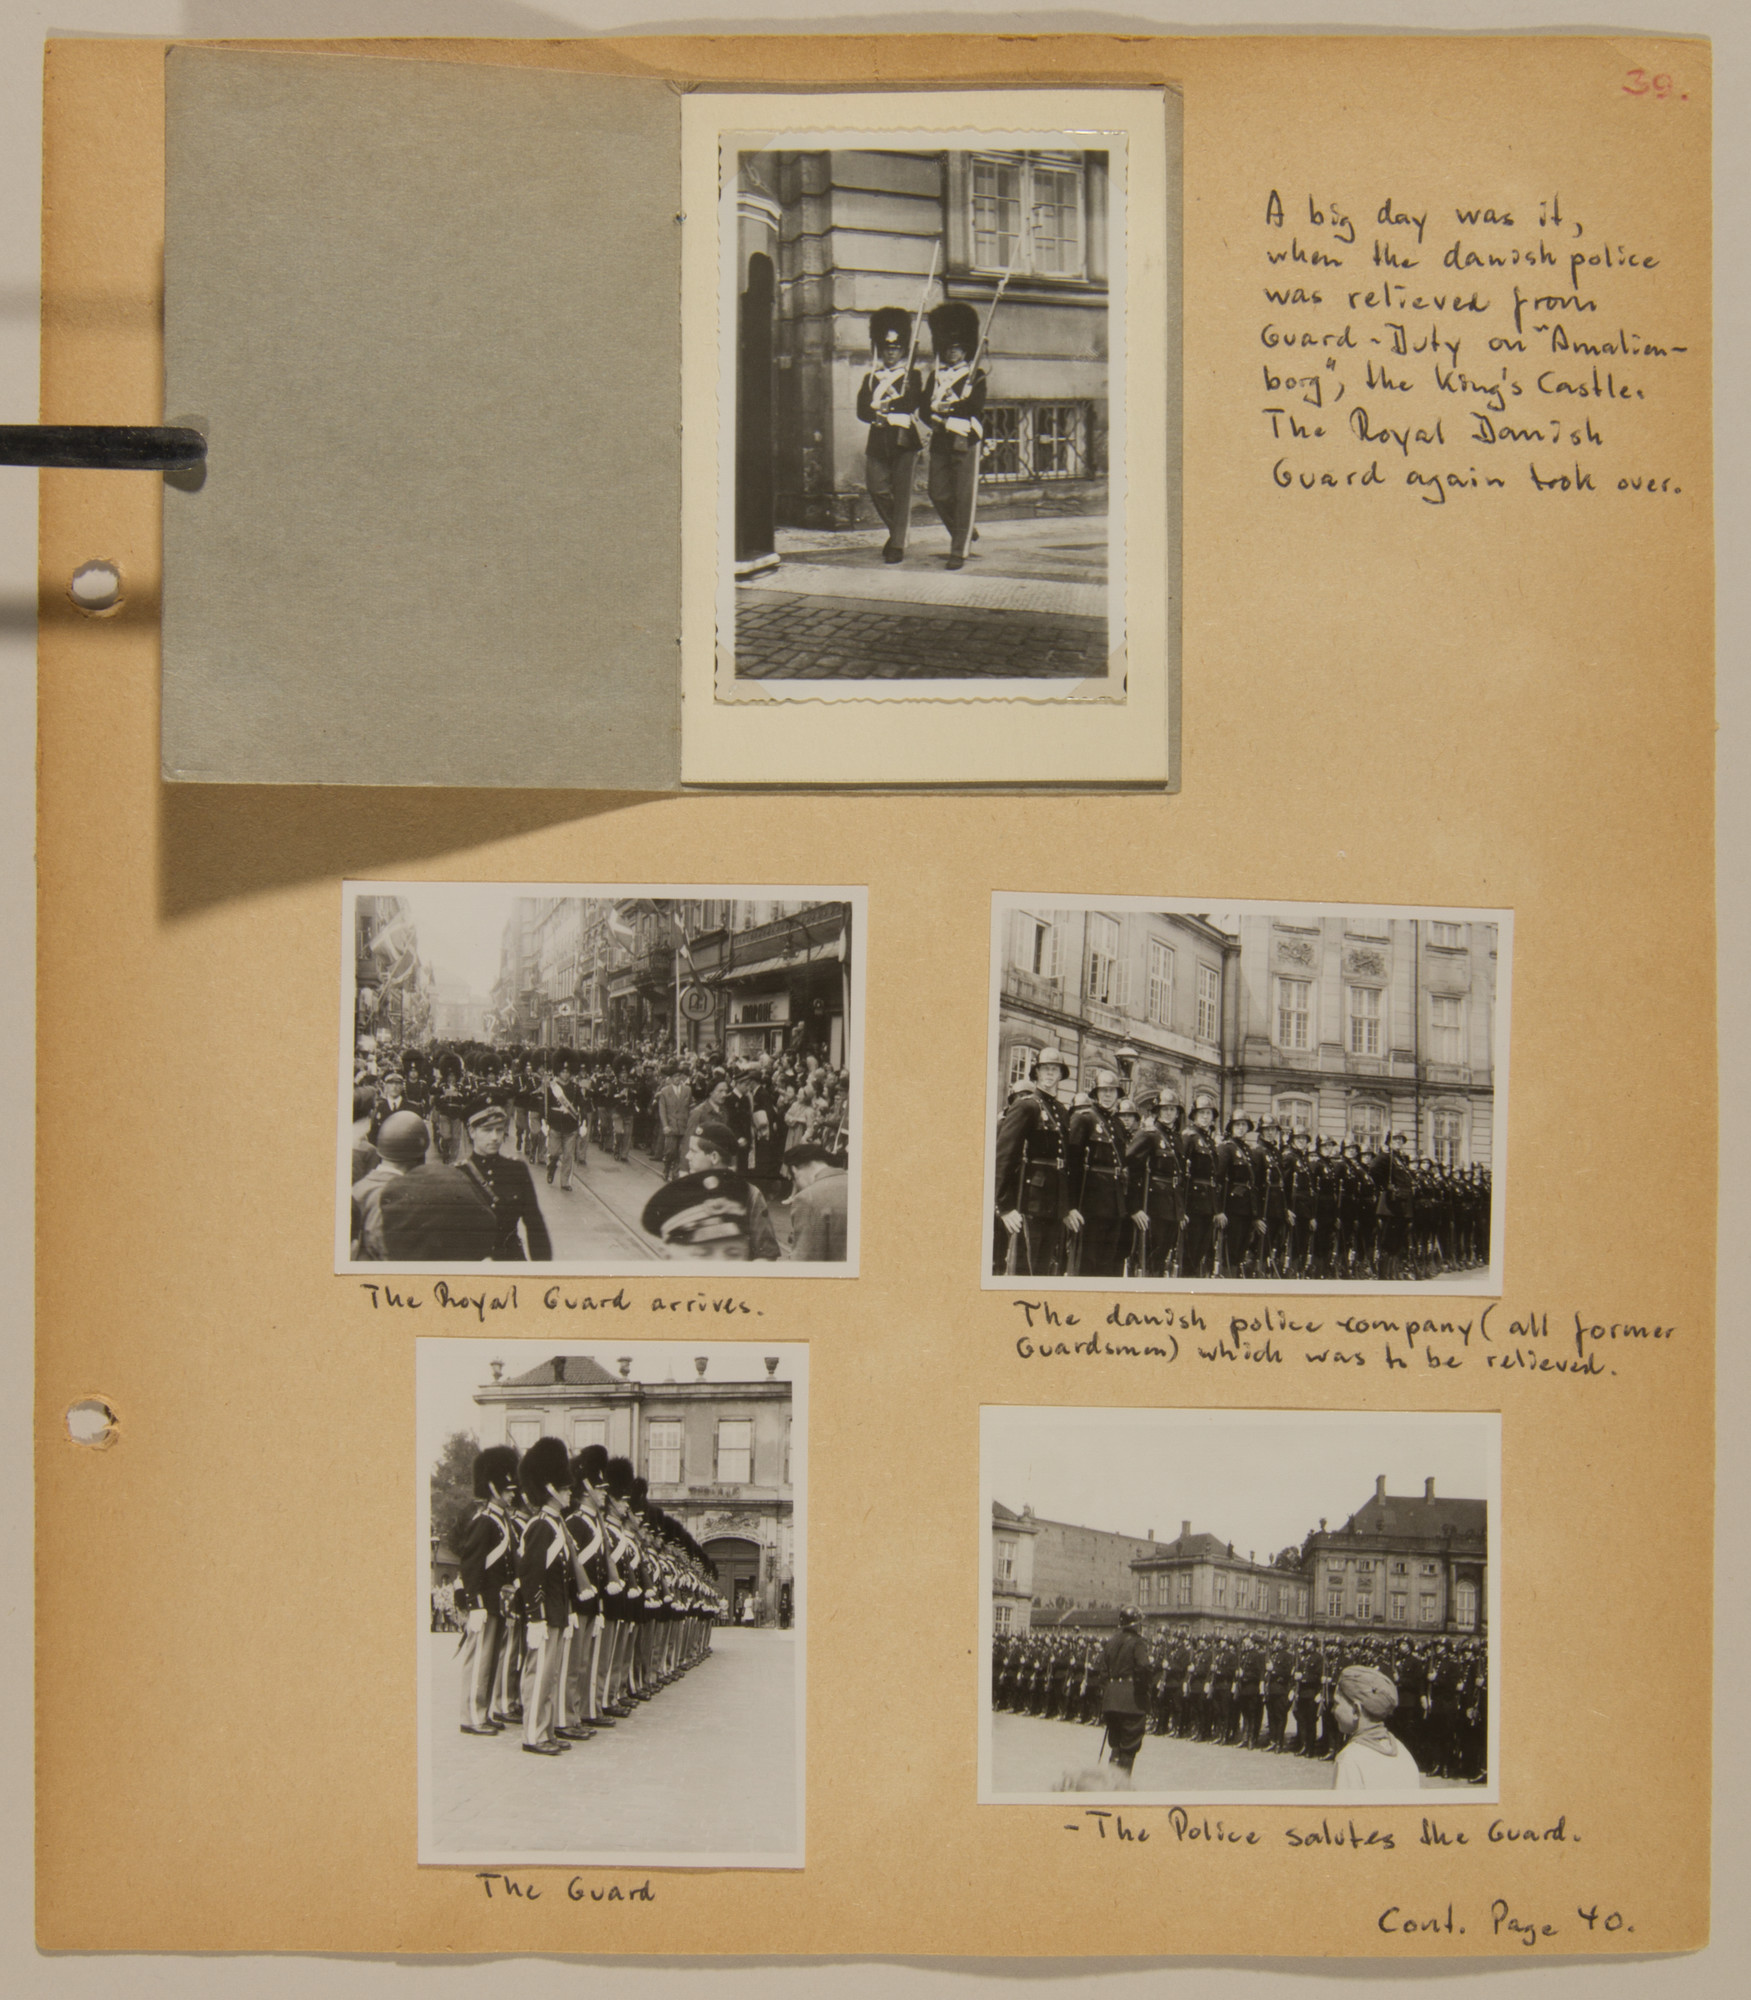 Page from volume five of a set of scrapbooks compiled by Bjorn Sibbern, a Danish policeman and resistance member, documenting the German occupation of Denmark.  The last page of the scrapbooks contain photographs of the return of the Royal Guard to the King's Castle.